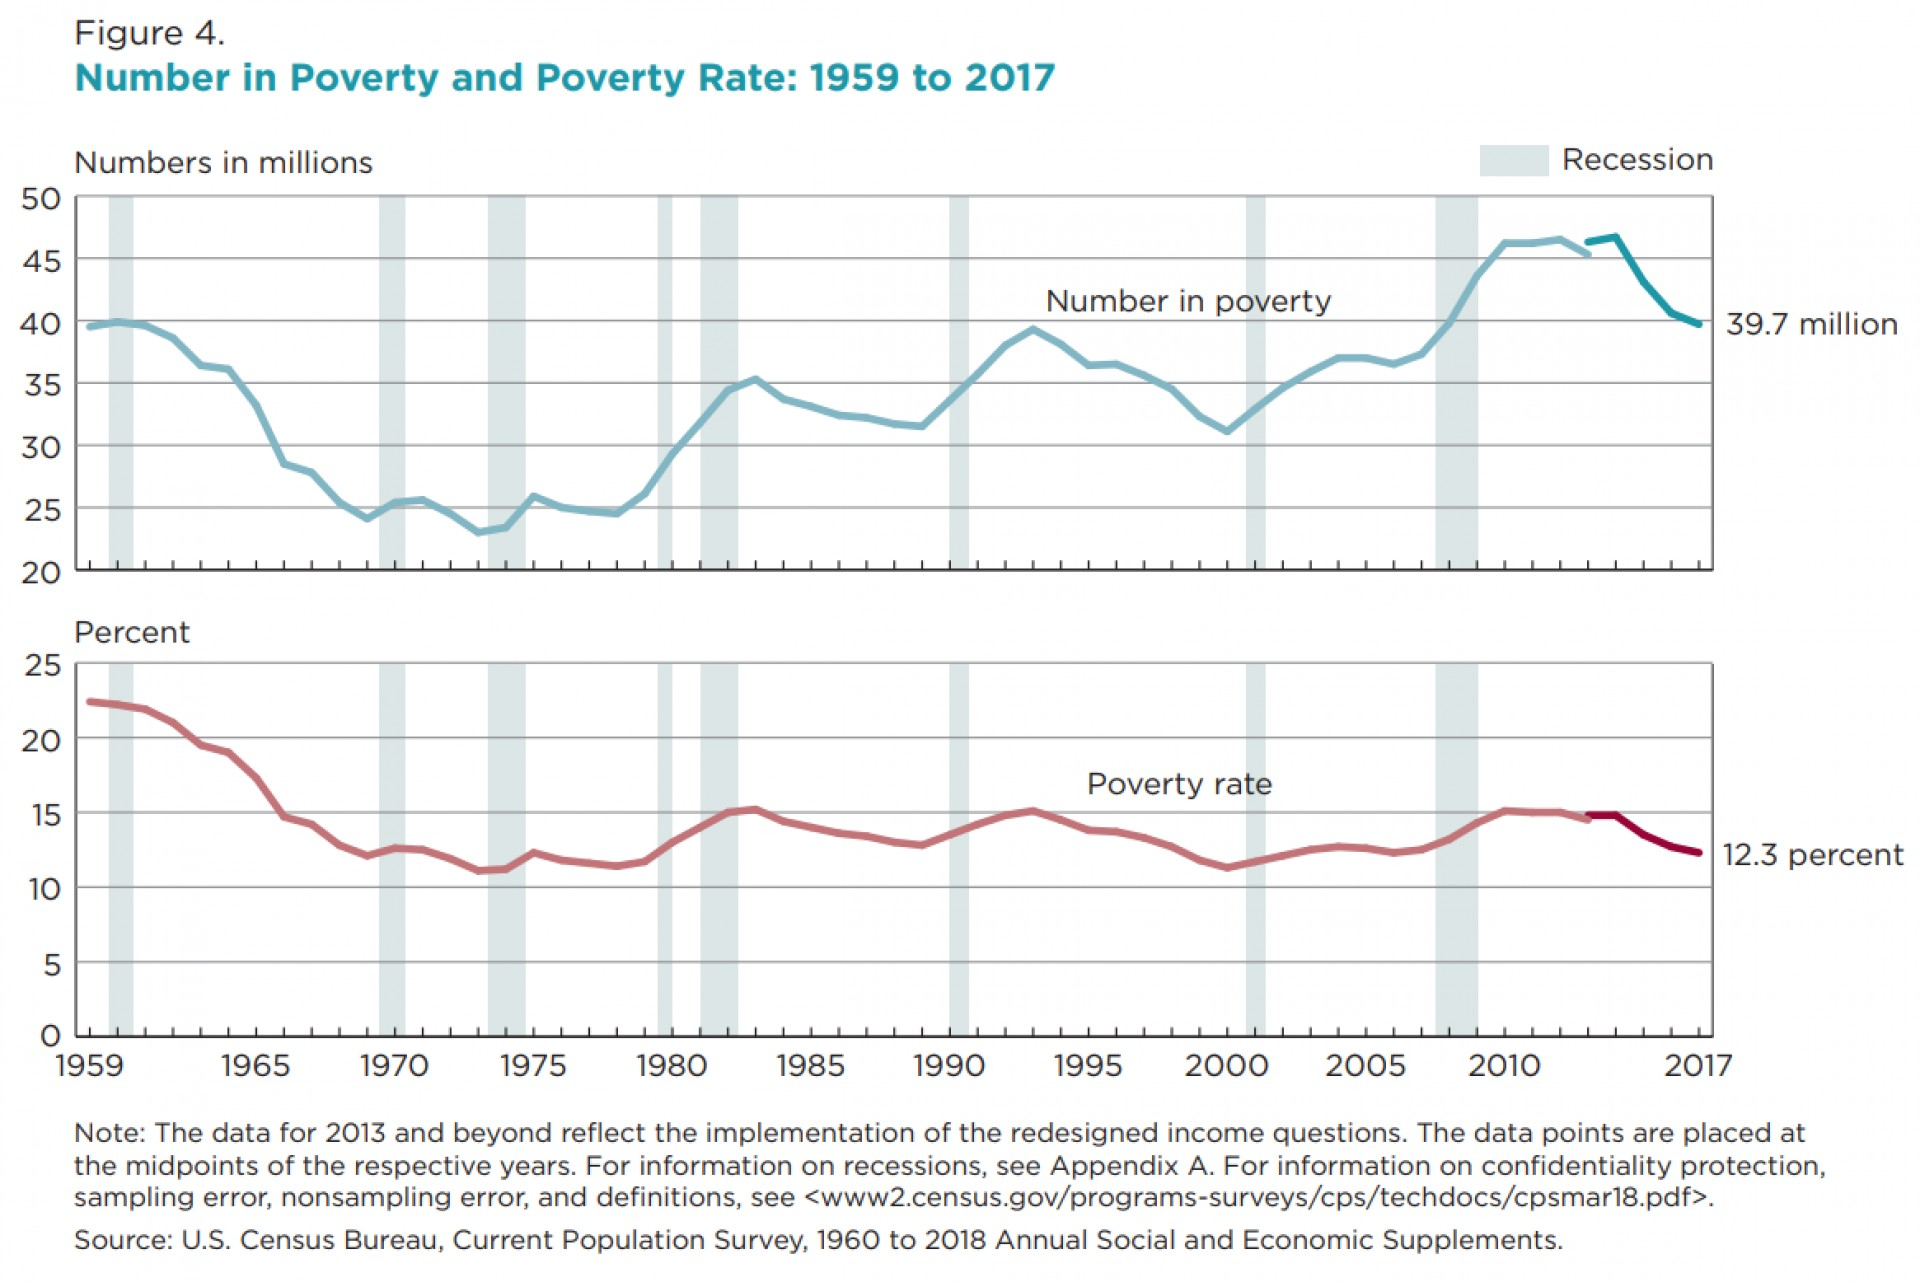 011 Free Research Paper On Poverty In America Number And Rate2c 1959 To 2017 Formidable 1920